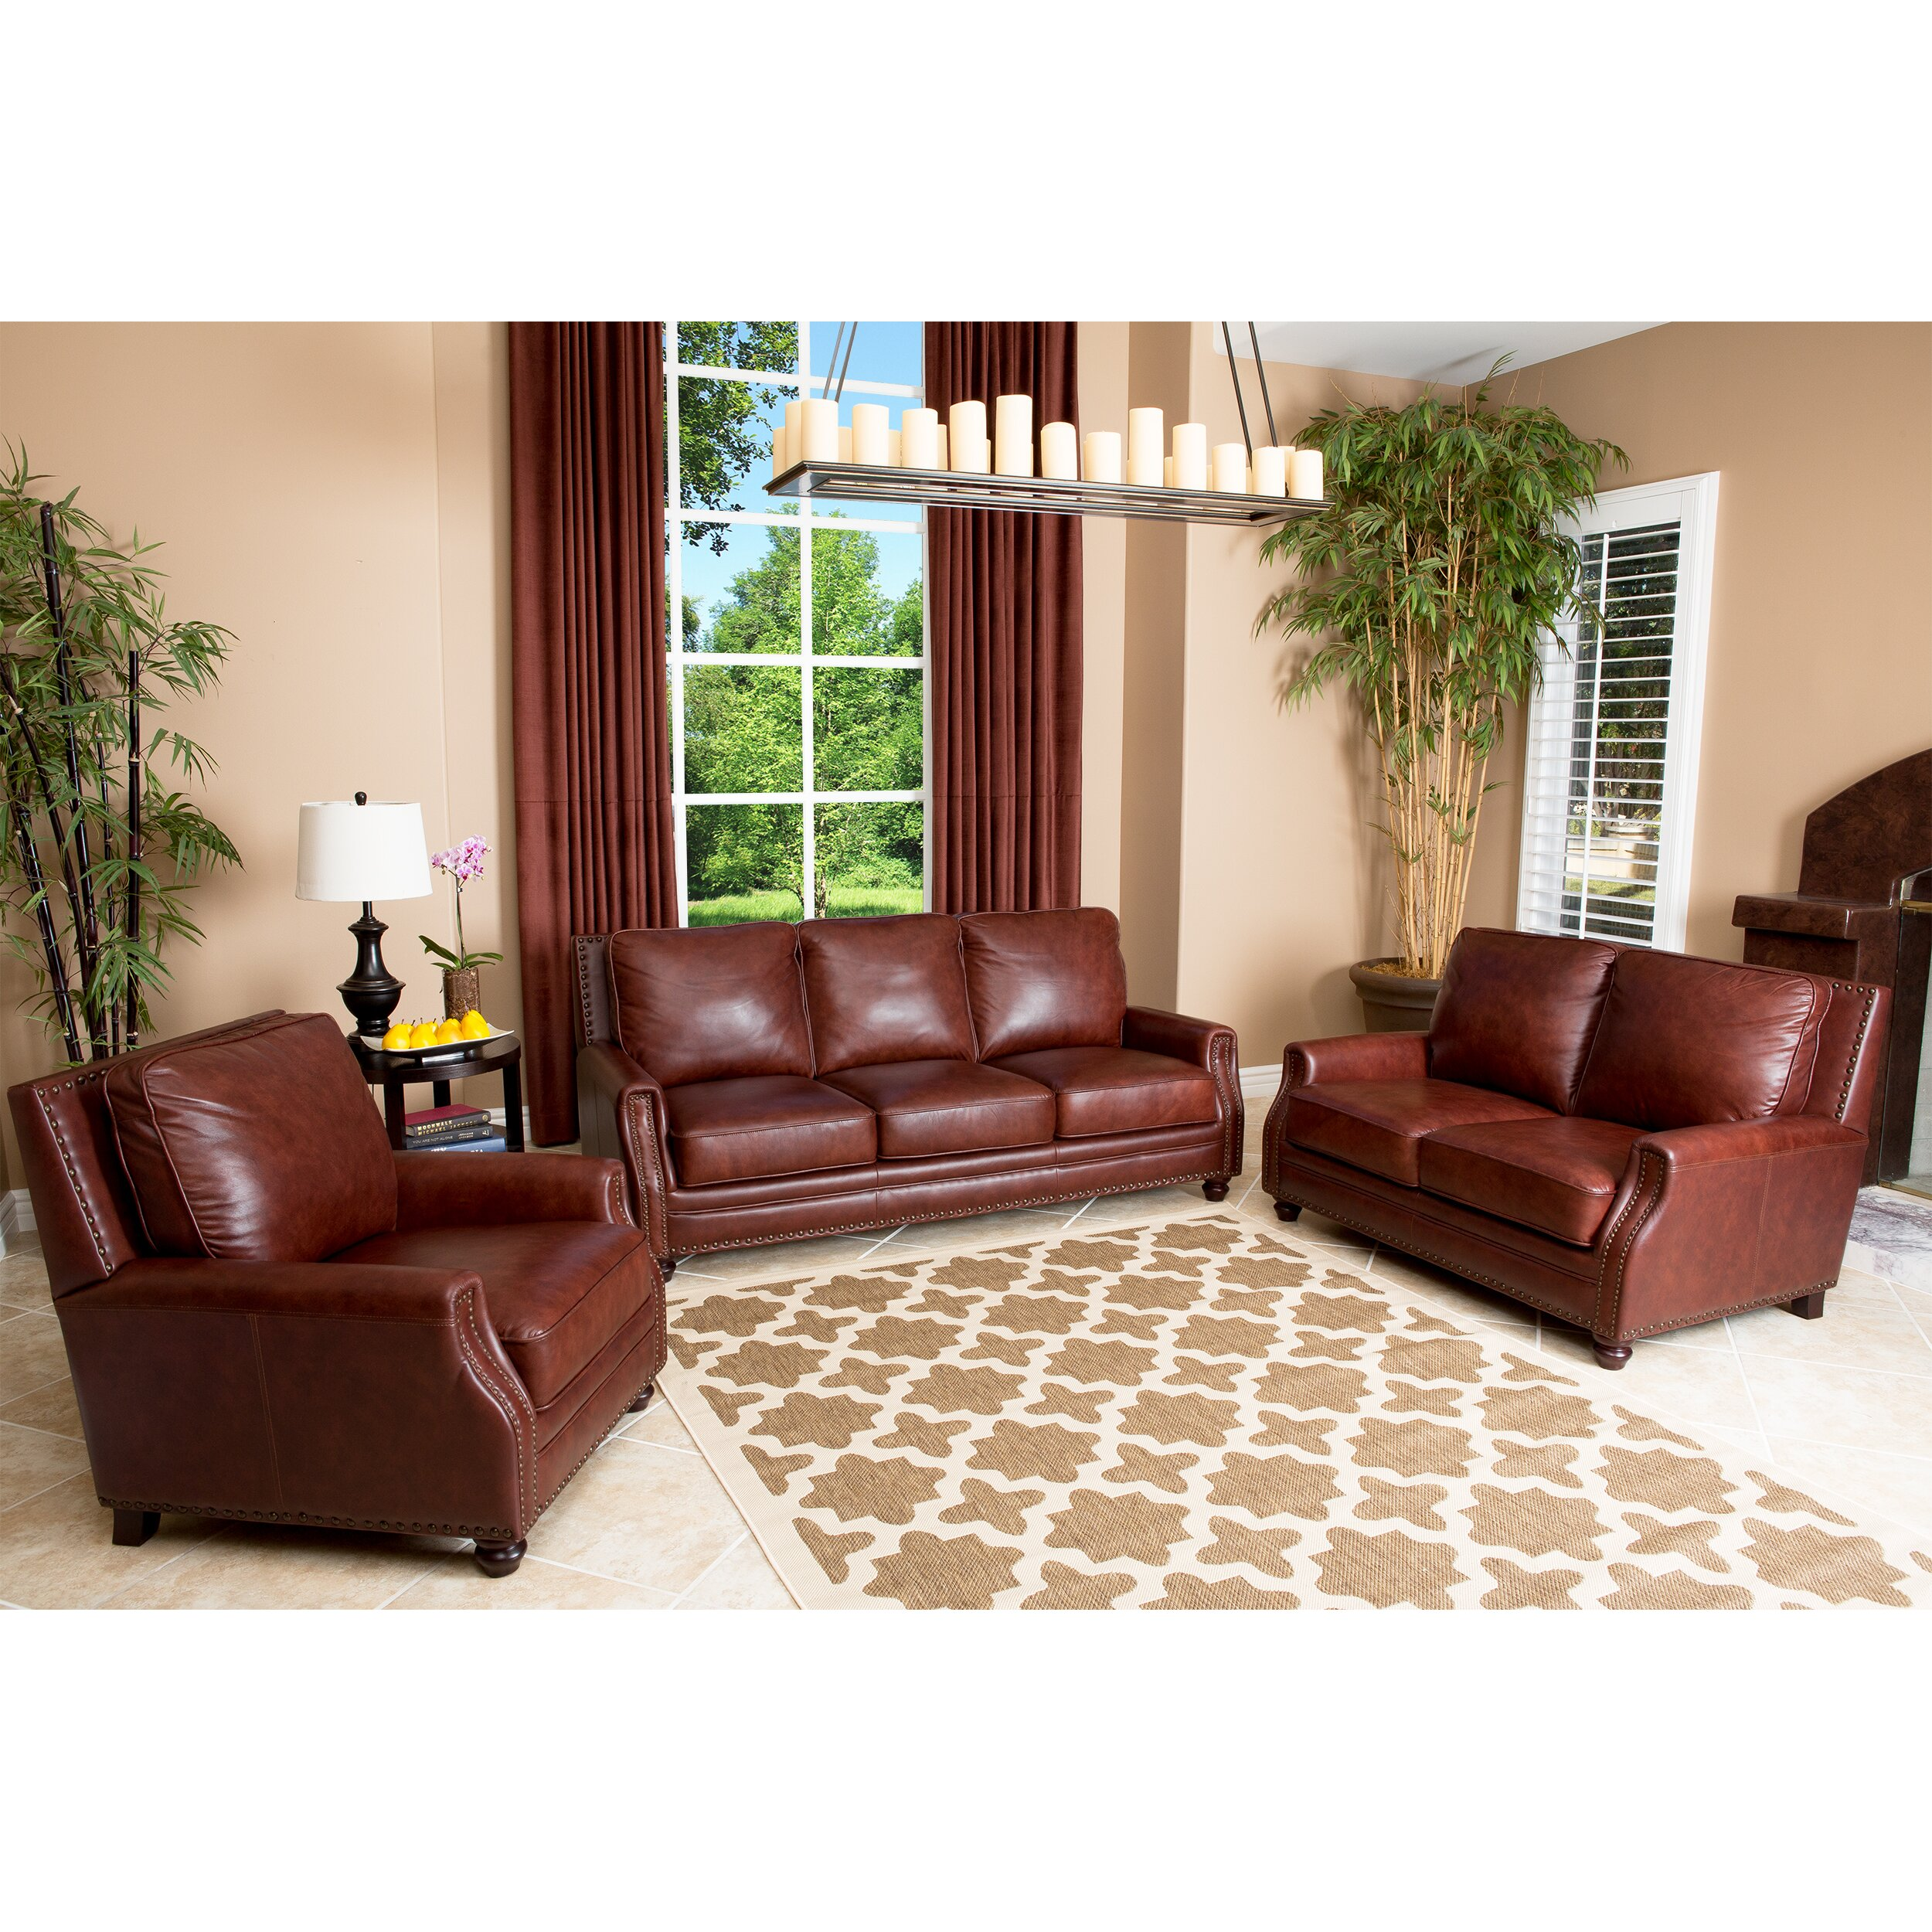 Abbyson Living Bel Air Leather Sofa Reviews Wayfair